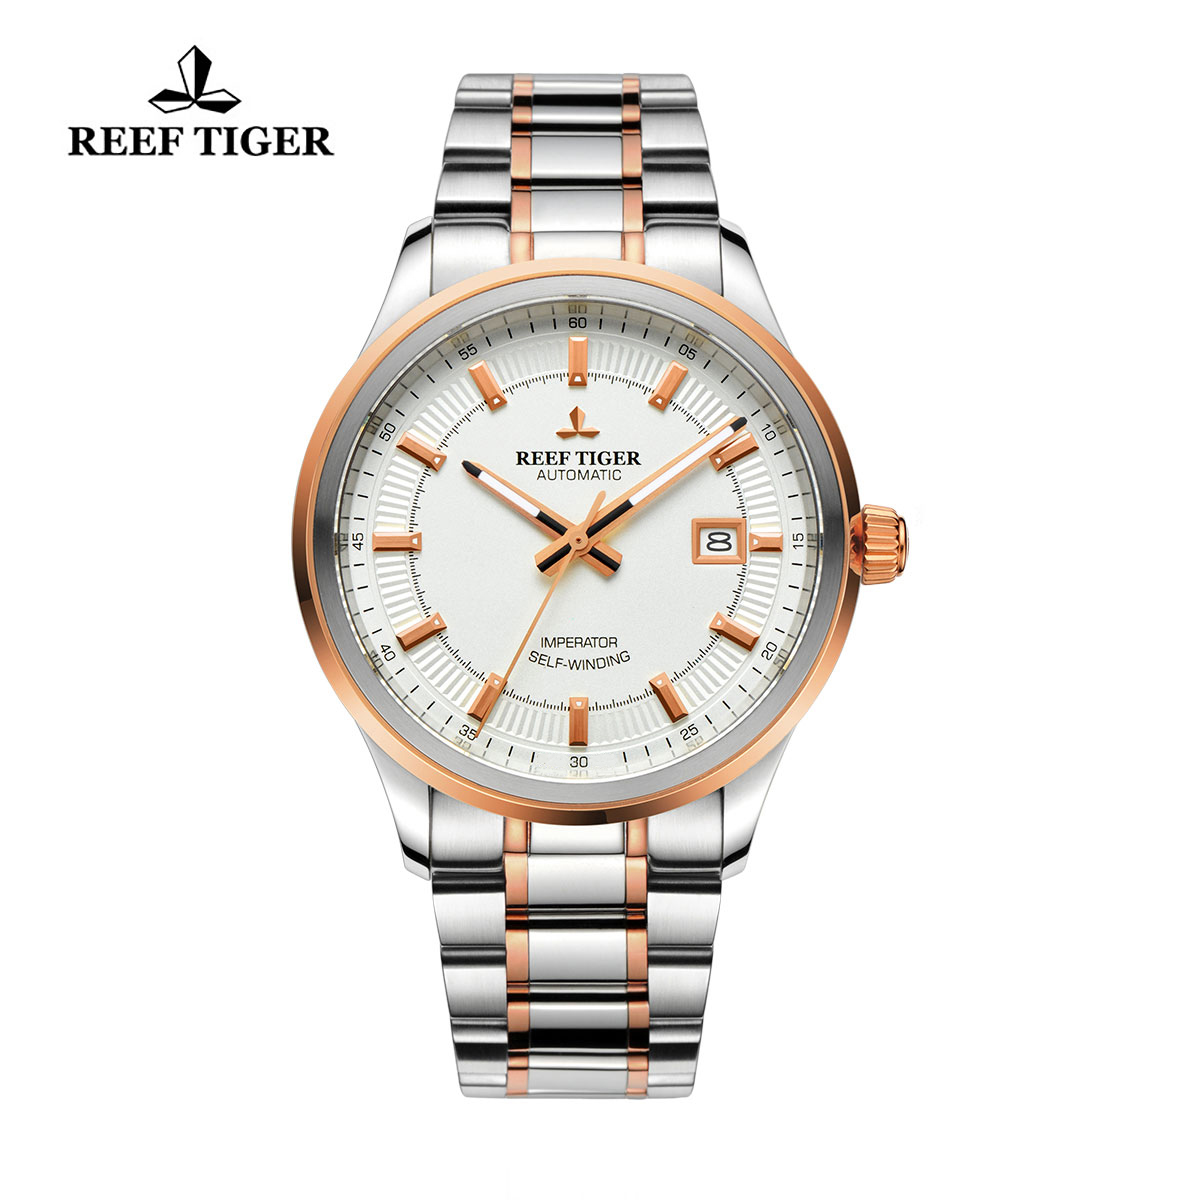 Reef Tiger Imperator Dress Watch Automatic Steel/Rose Gold White Dial RGA8015-PWT